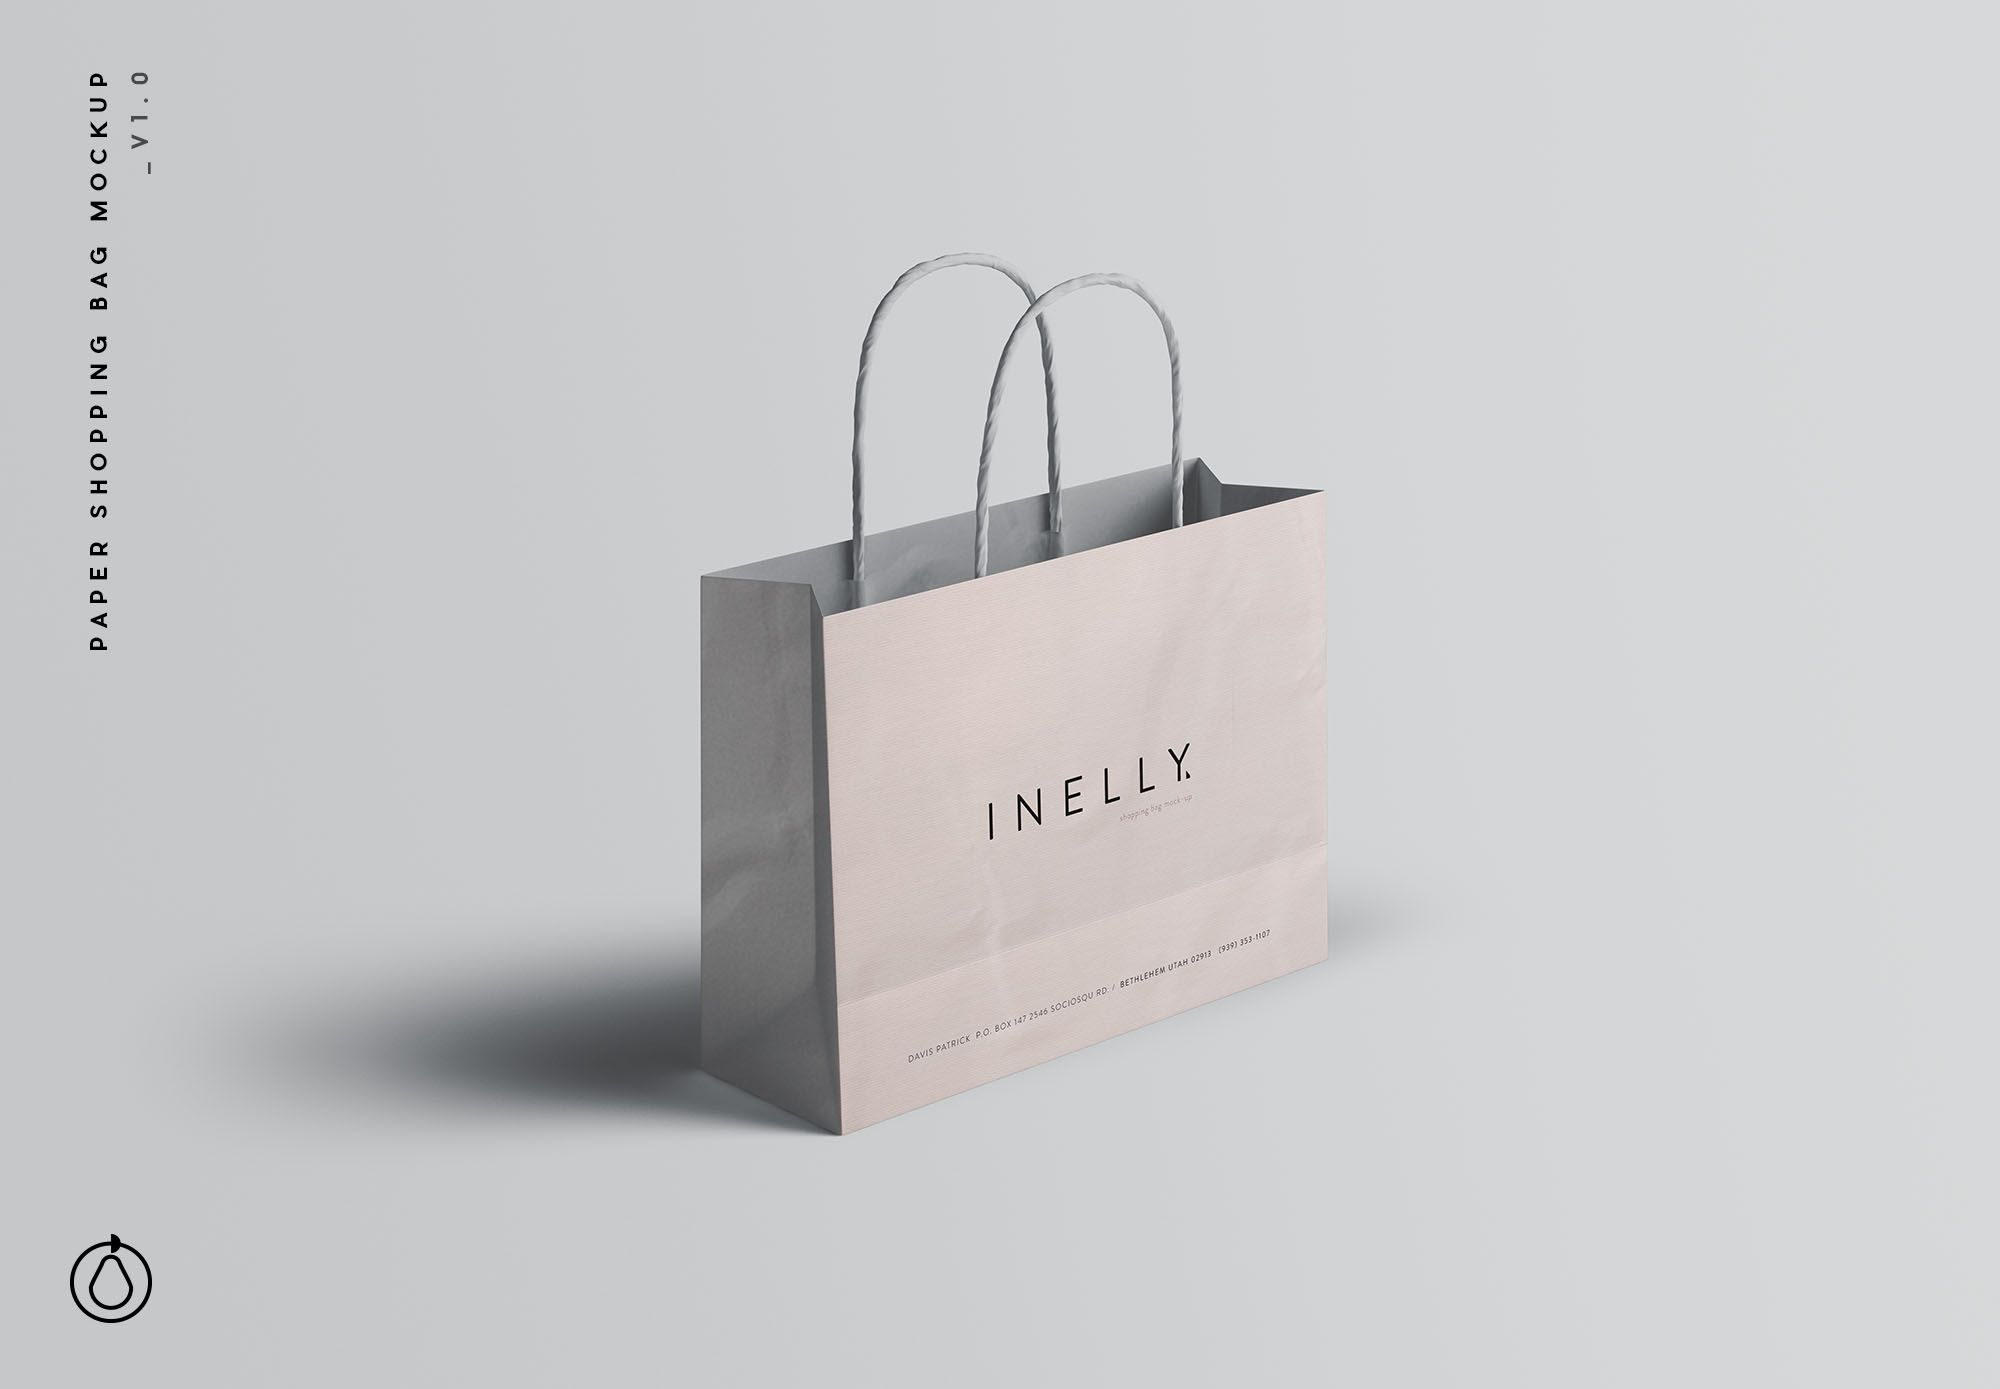 Download Paper Shopping Bag Mockup Psd Bag Mockup Paper Shopping Bag Mockup Psd